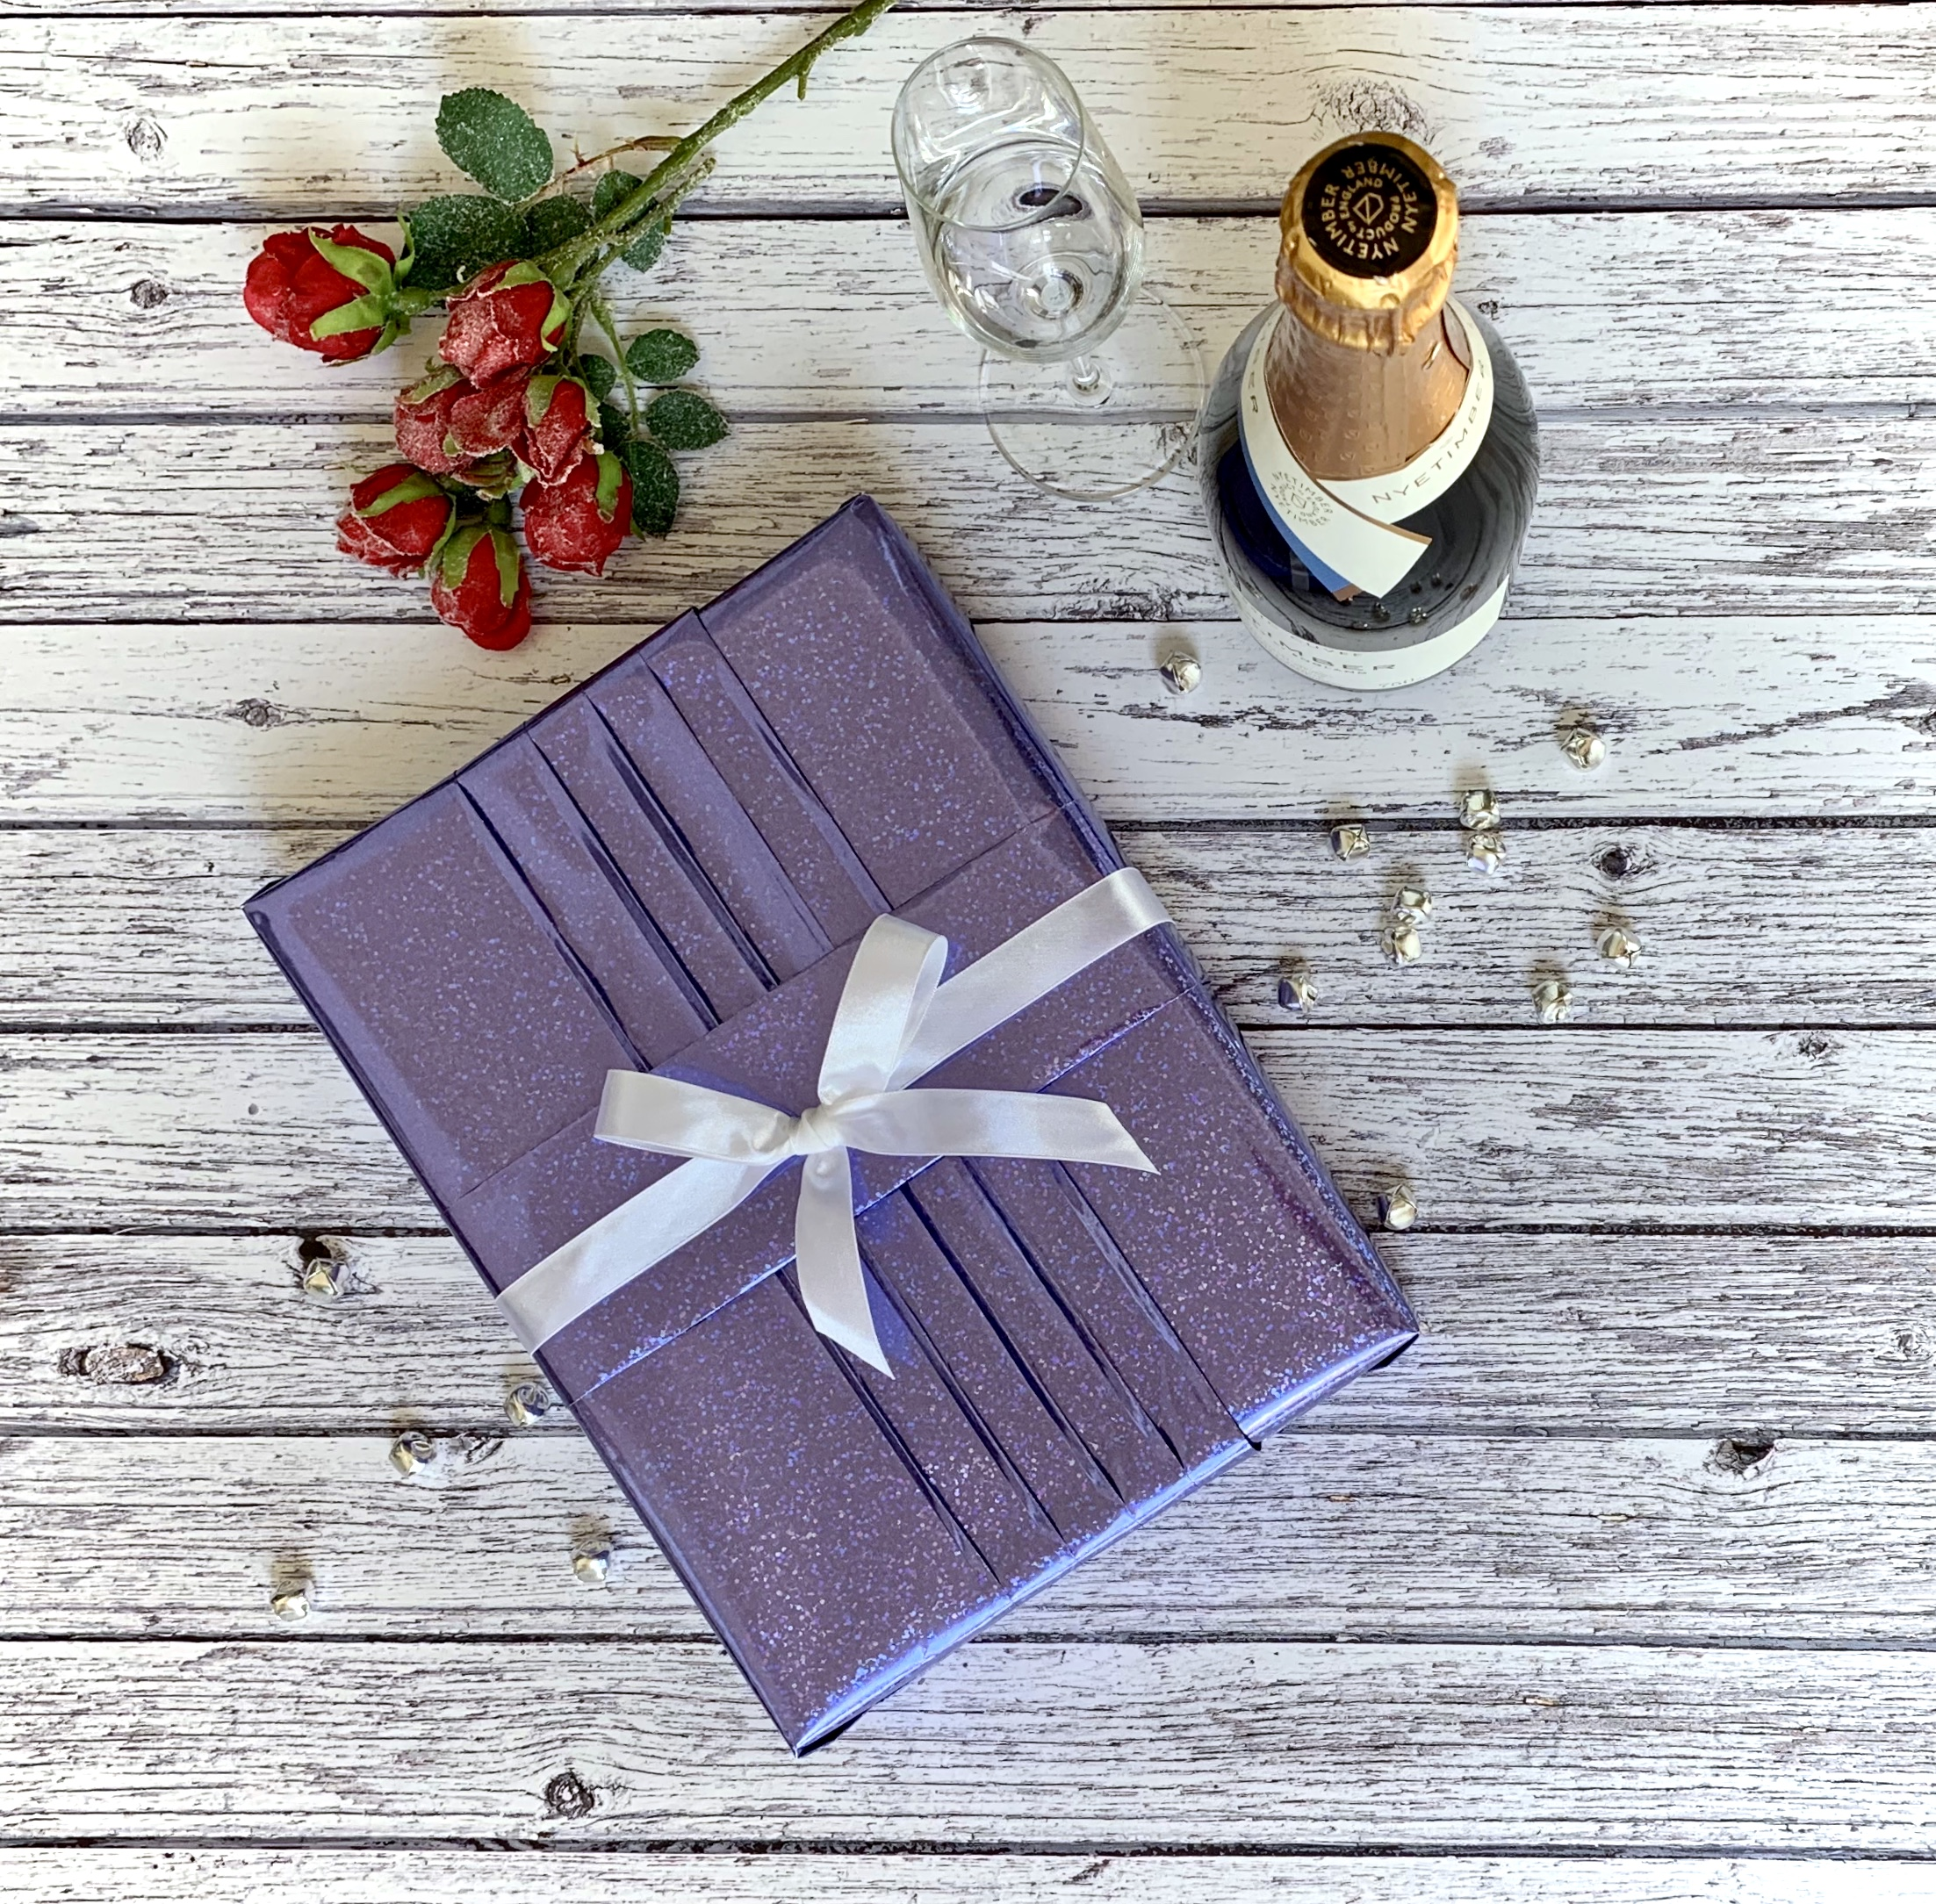 Giftwrapping for a special gift can still be simple